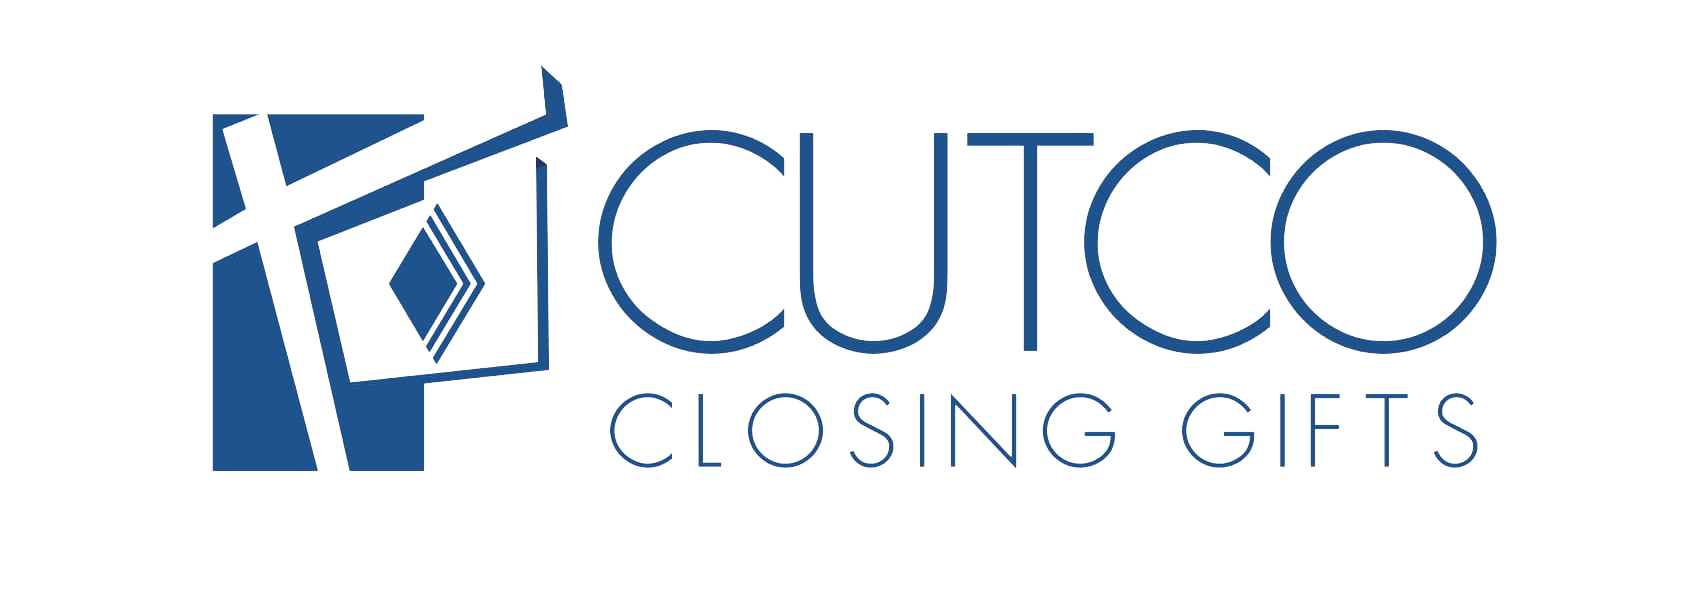 cutco_closing_gifts_logo_(landscape)-1.png